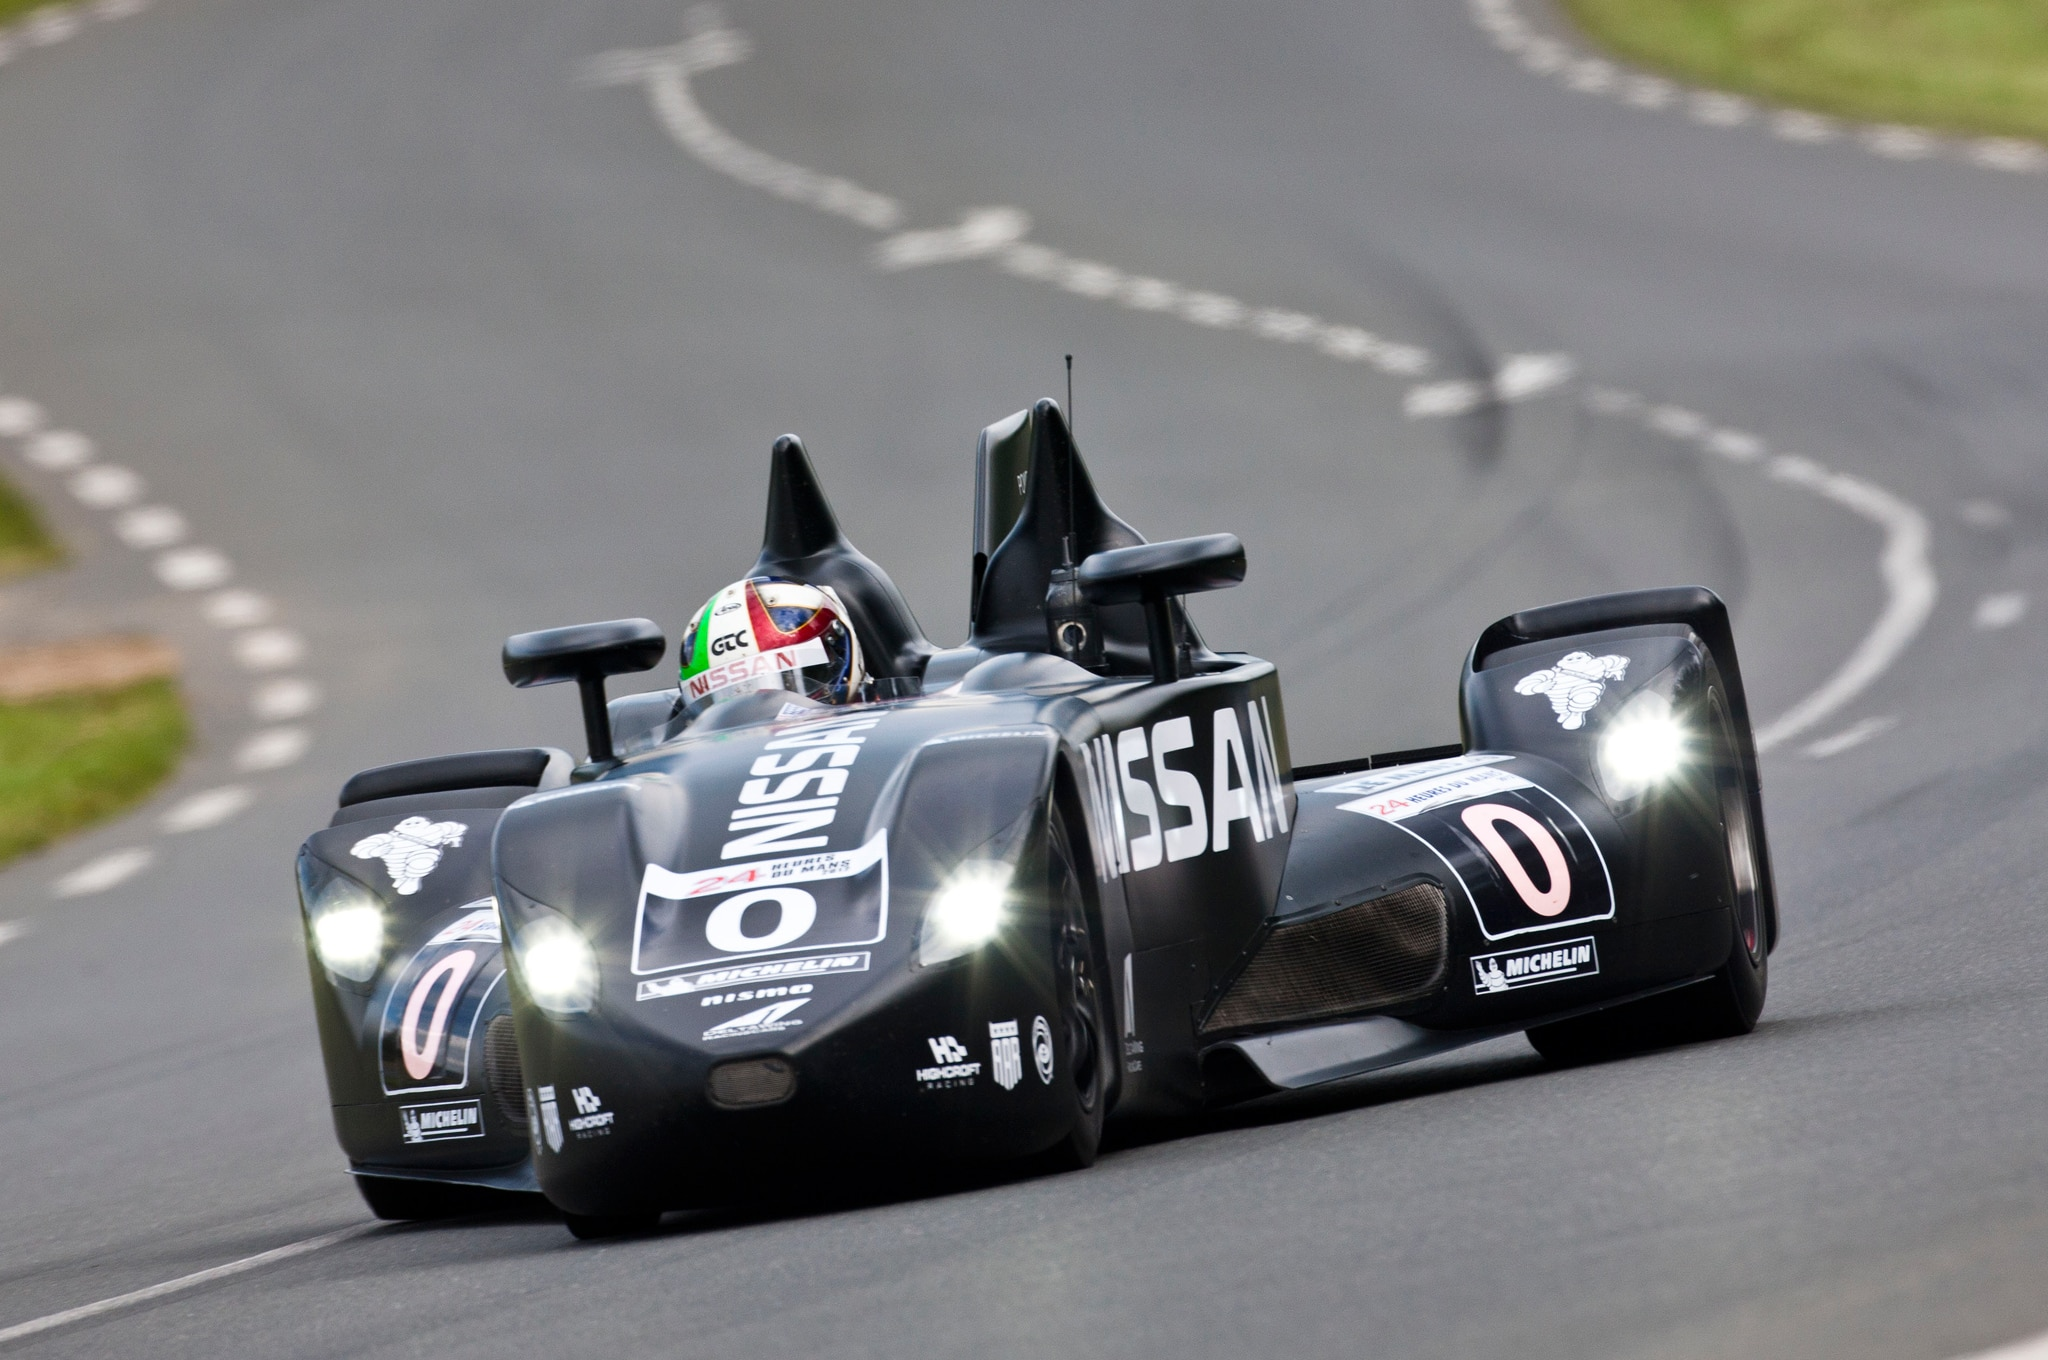 DeltaWing Race Car Now For Sale To Private Teams